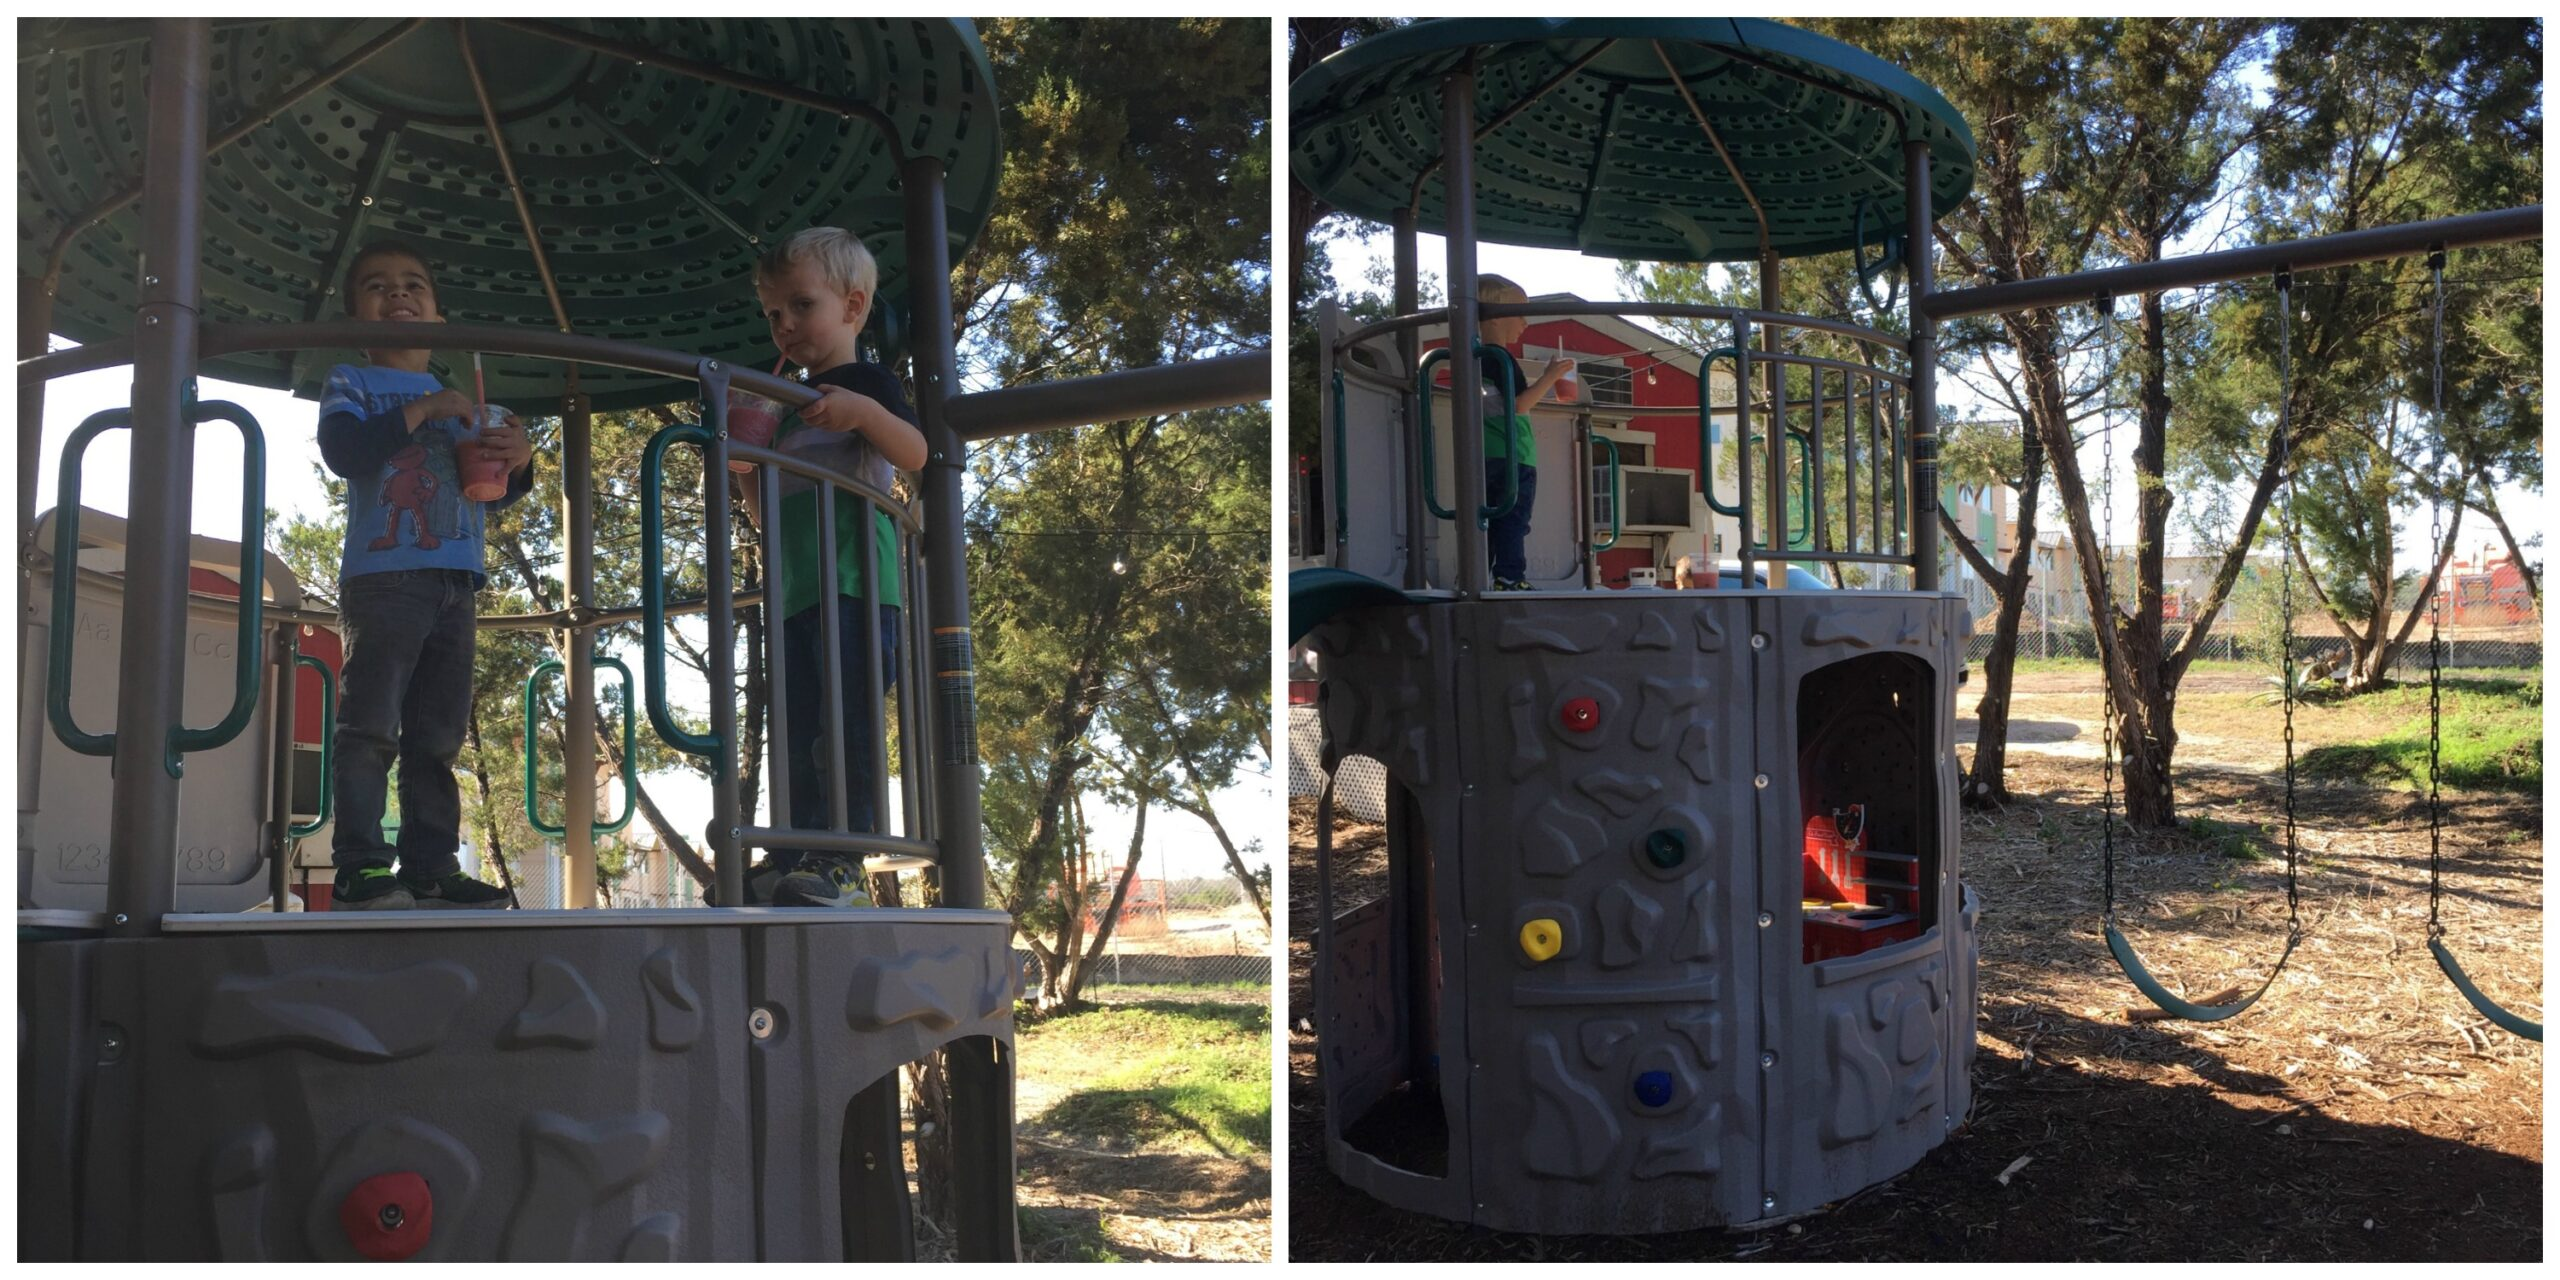 Another fun playscape at The Thicket | Free Fun in Austin